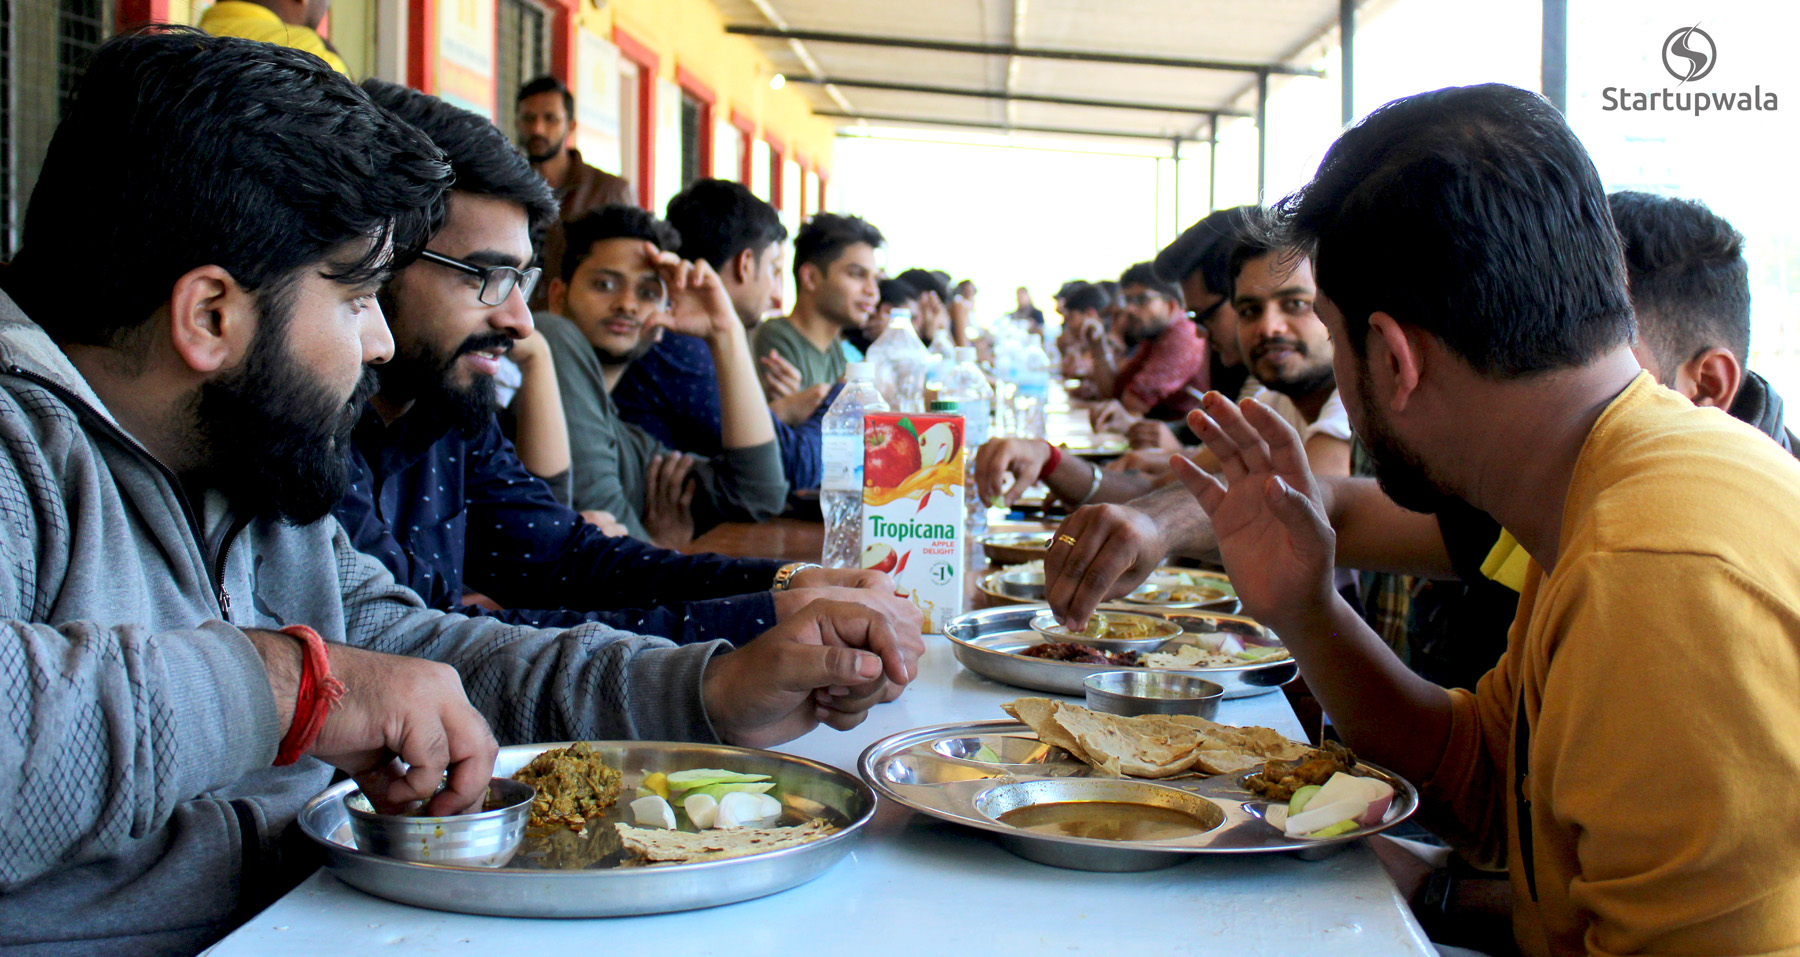 lunch - startupwala team